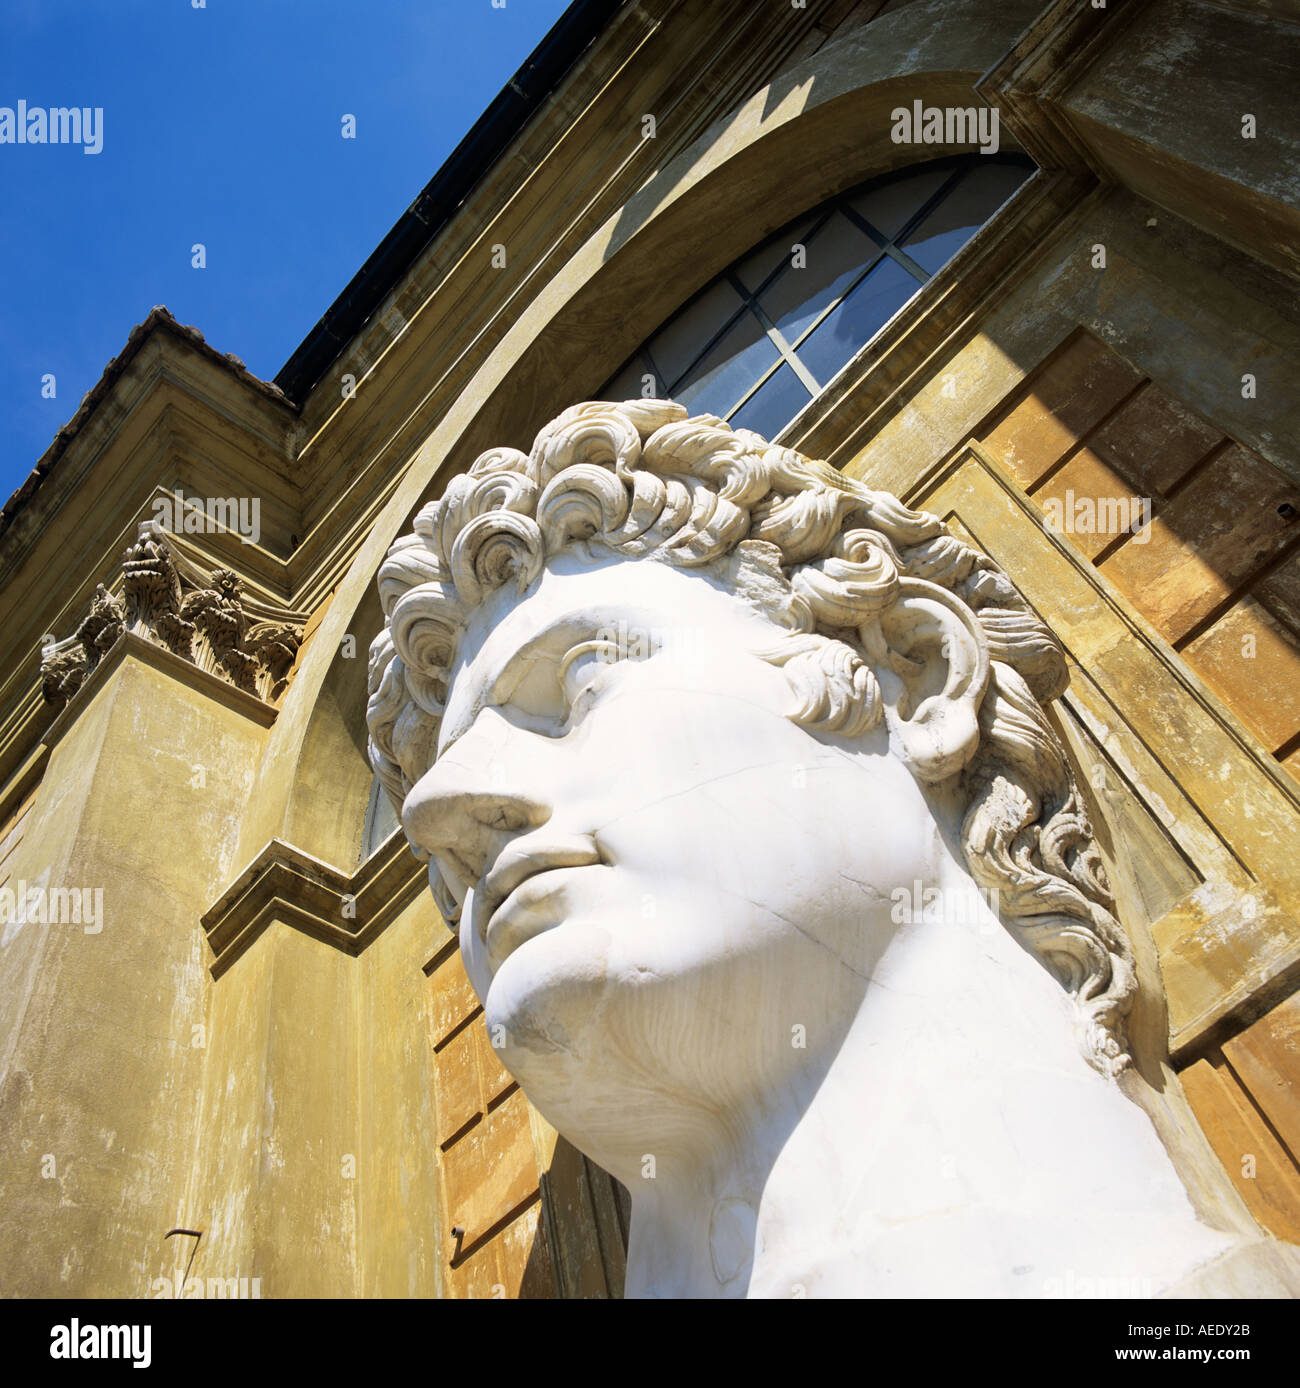 Giant Marble Statue Of Nero National Museum Rome Italy Europe - Stock Image